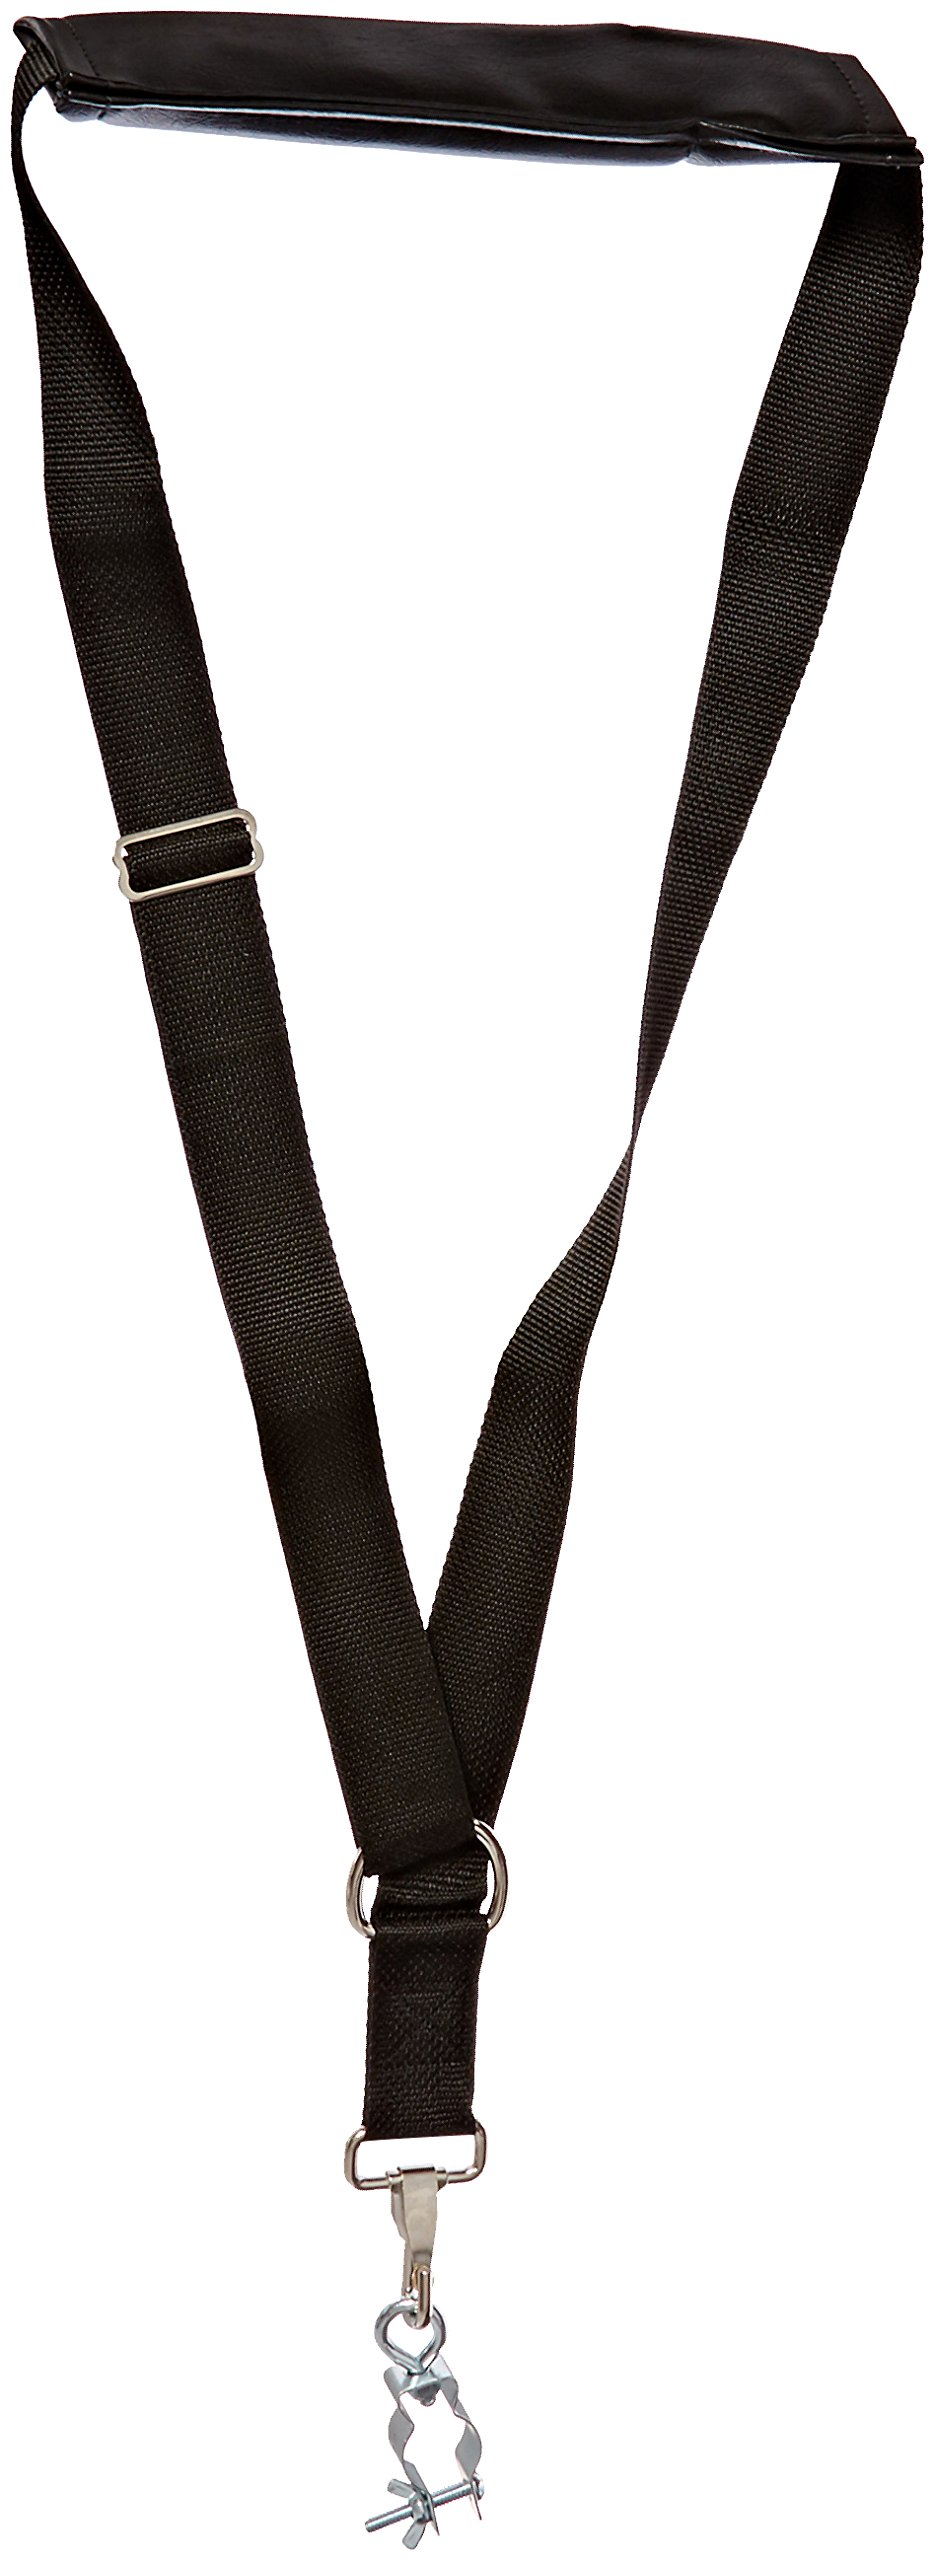 MaxPower 8569 Trimmer Harness Shoulder Strap with Pad and Hanger